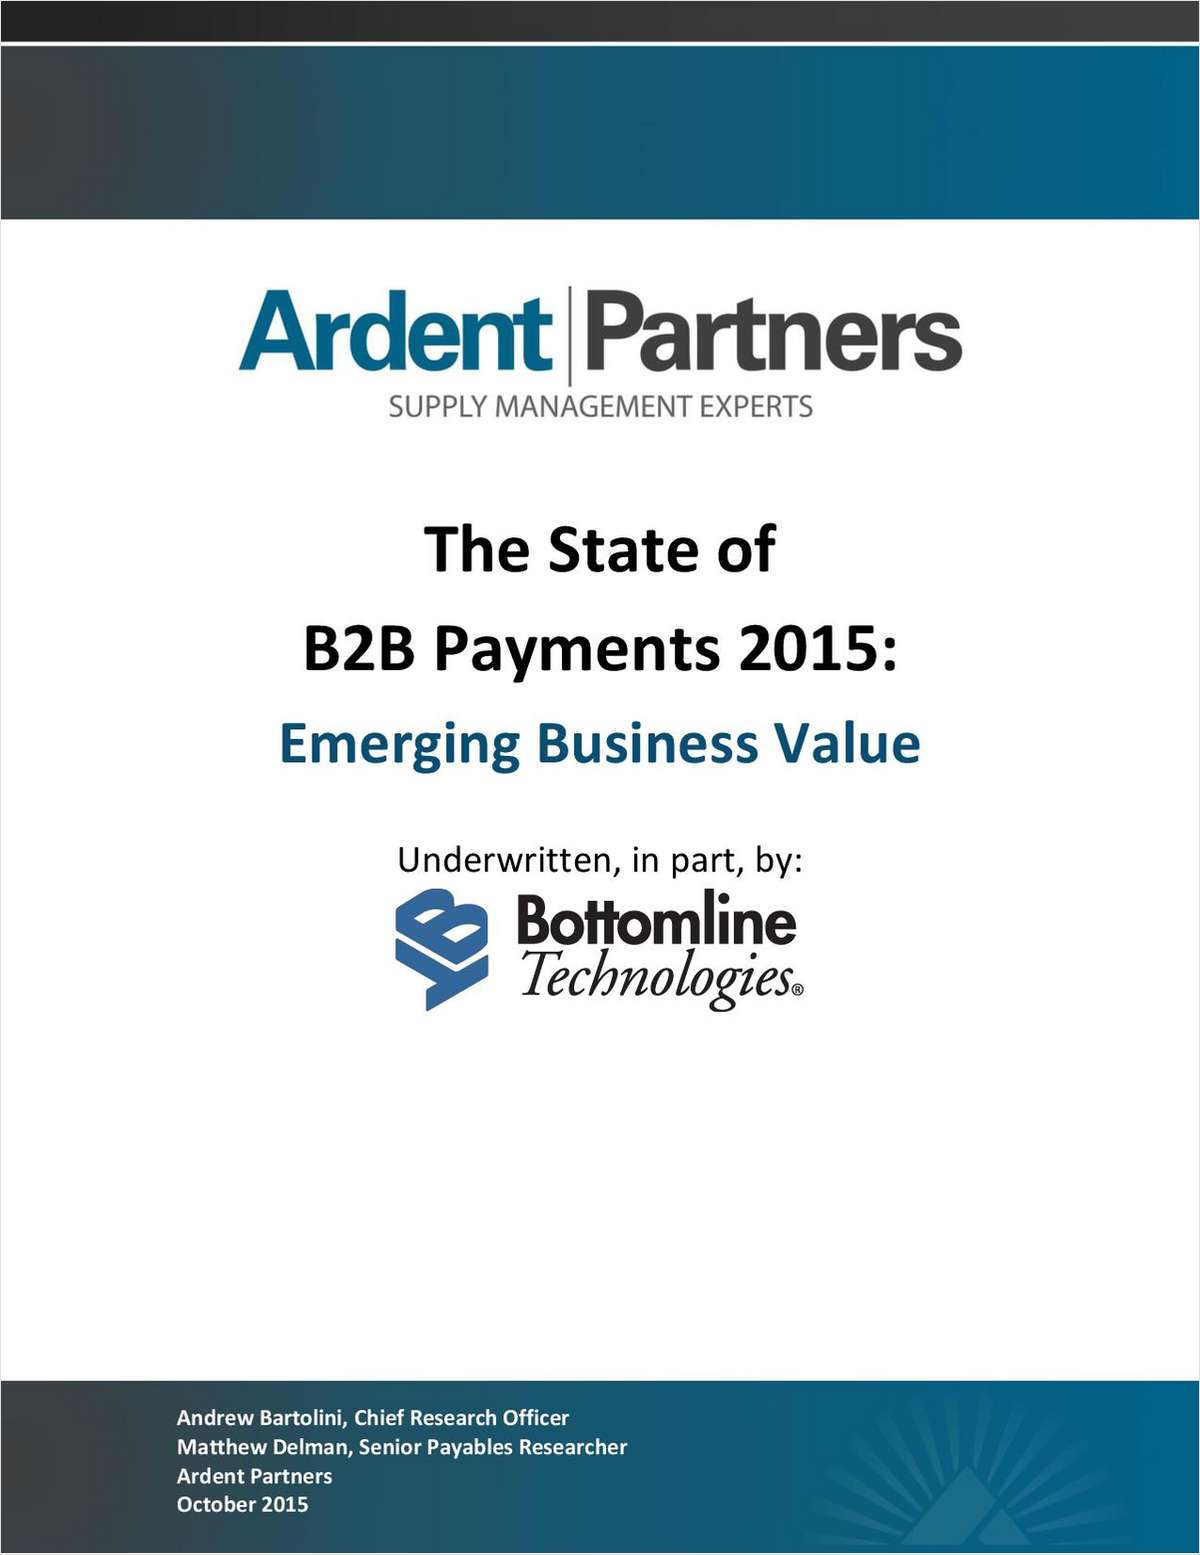 Ardent Partners: The State of B2B Payments 2015